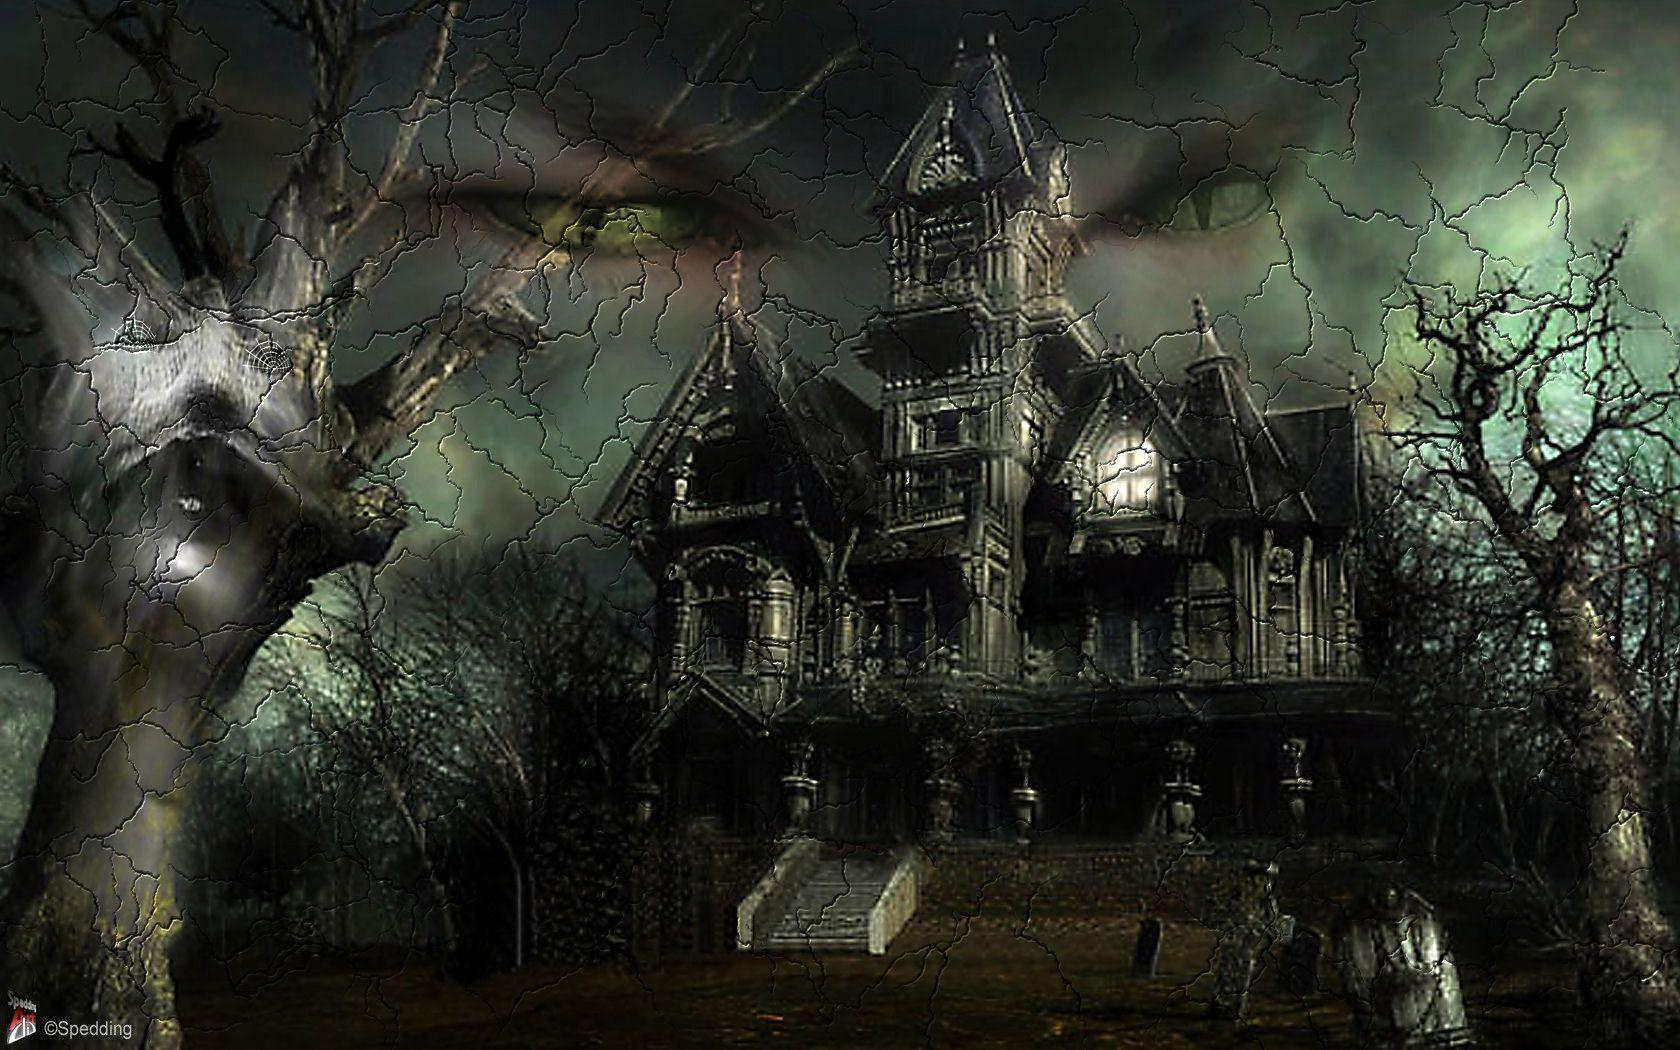 1680x1050 - Scary Halloween Background 36